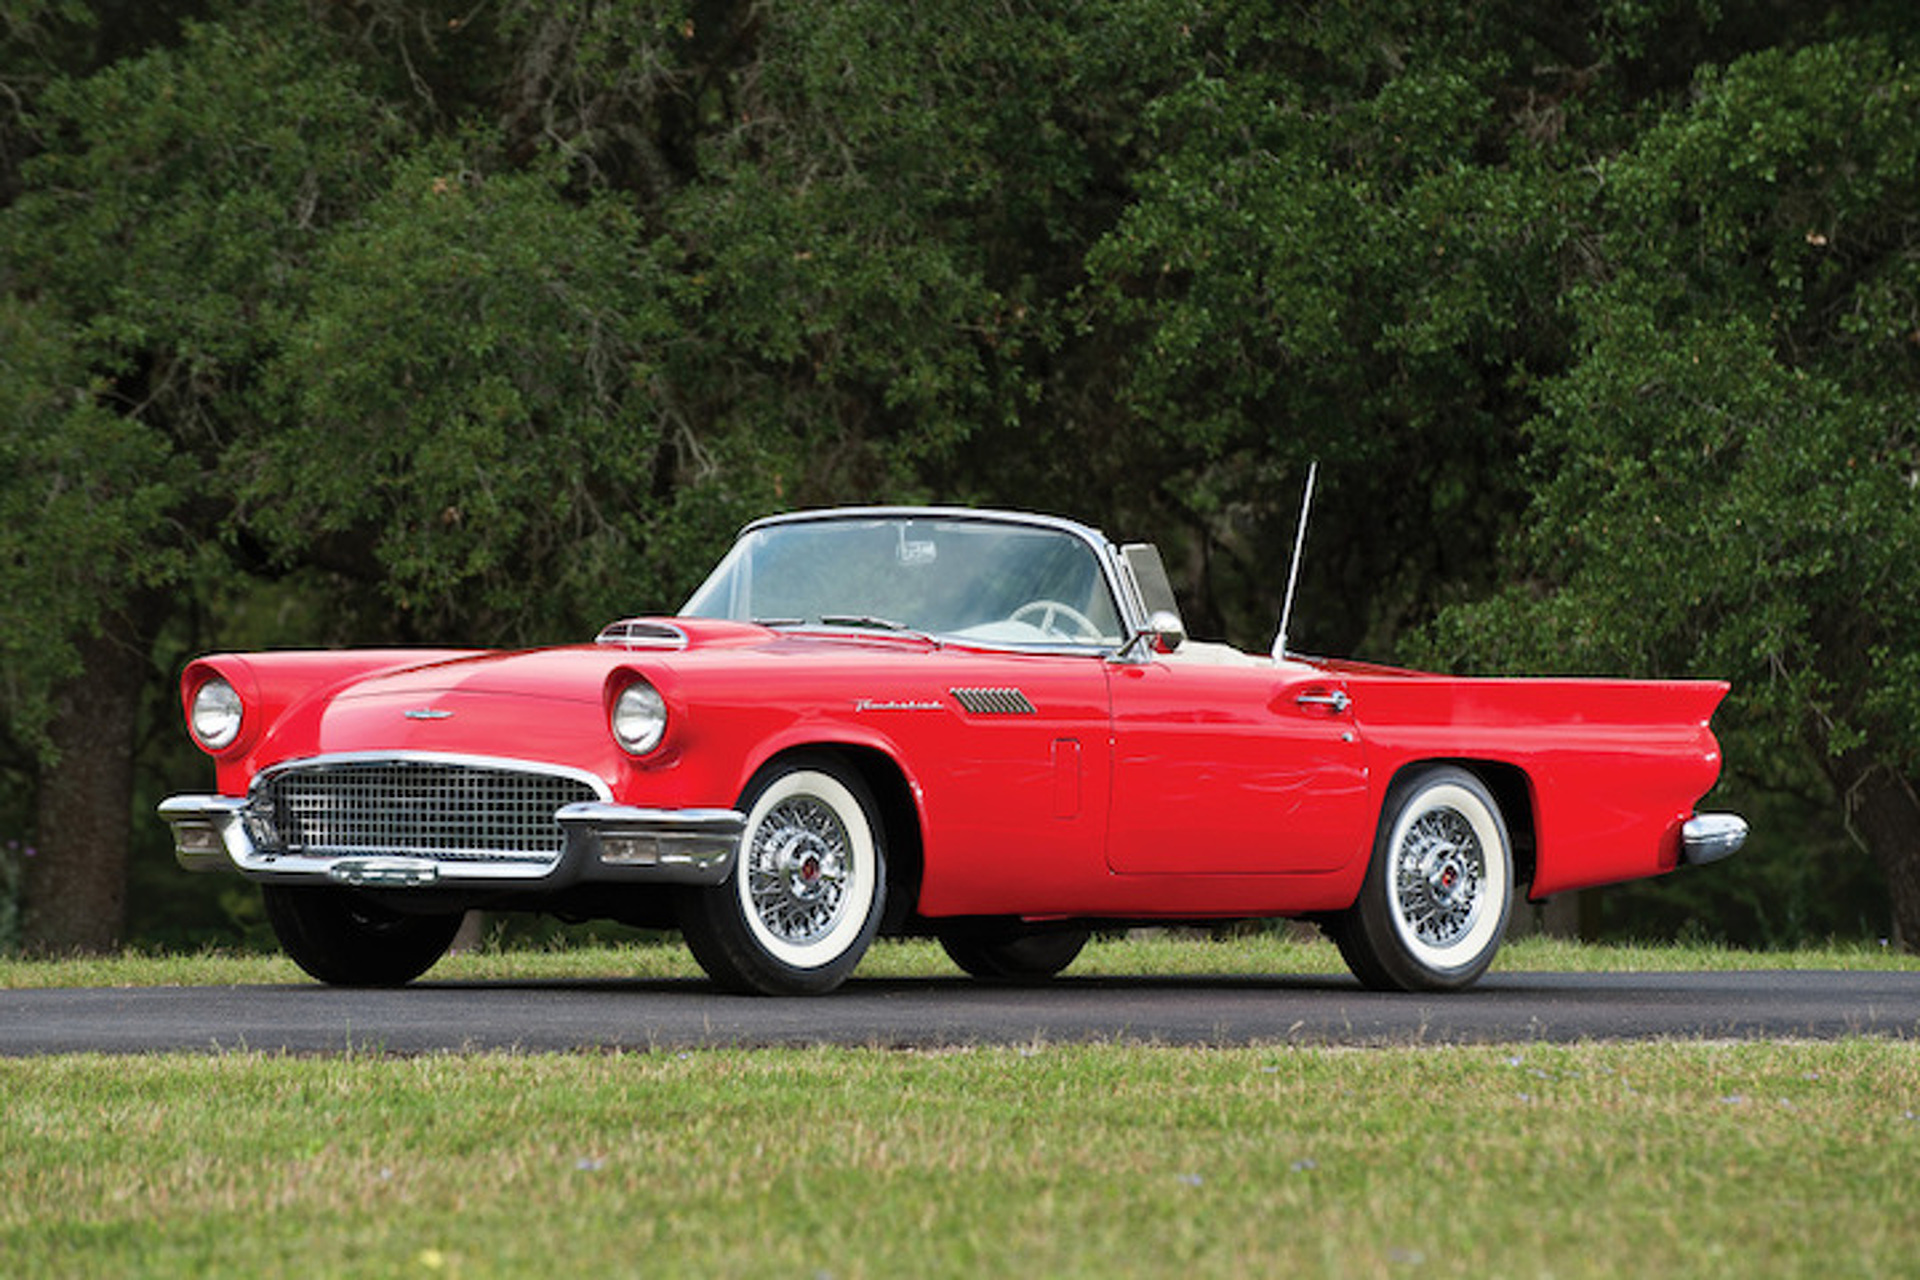 Muscle Car Pics >> The 1957 Ford Thunderbird Almost Killed the Corvette